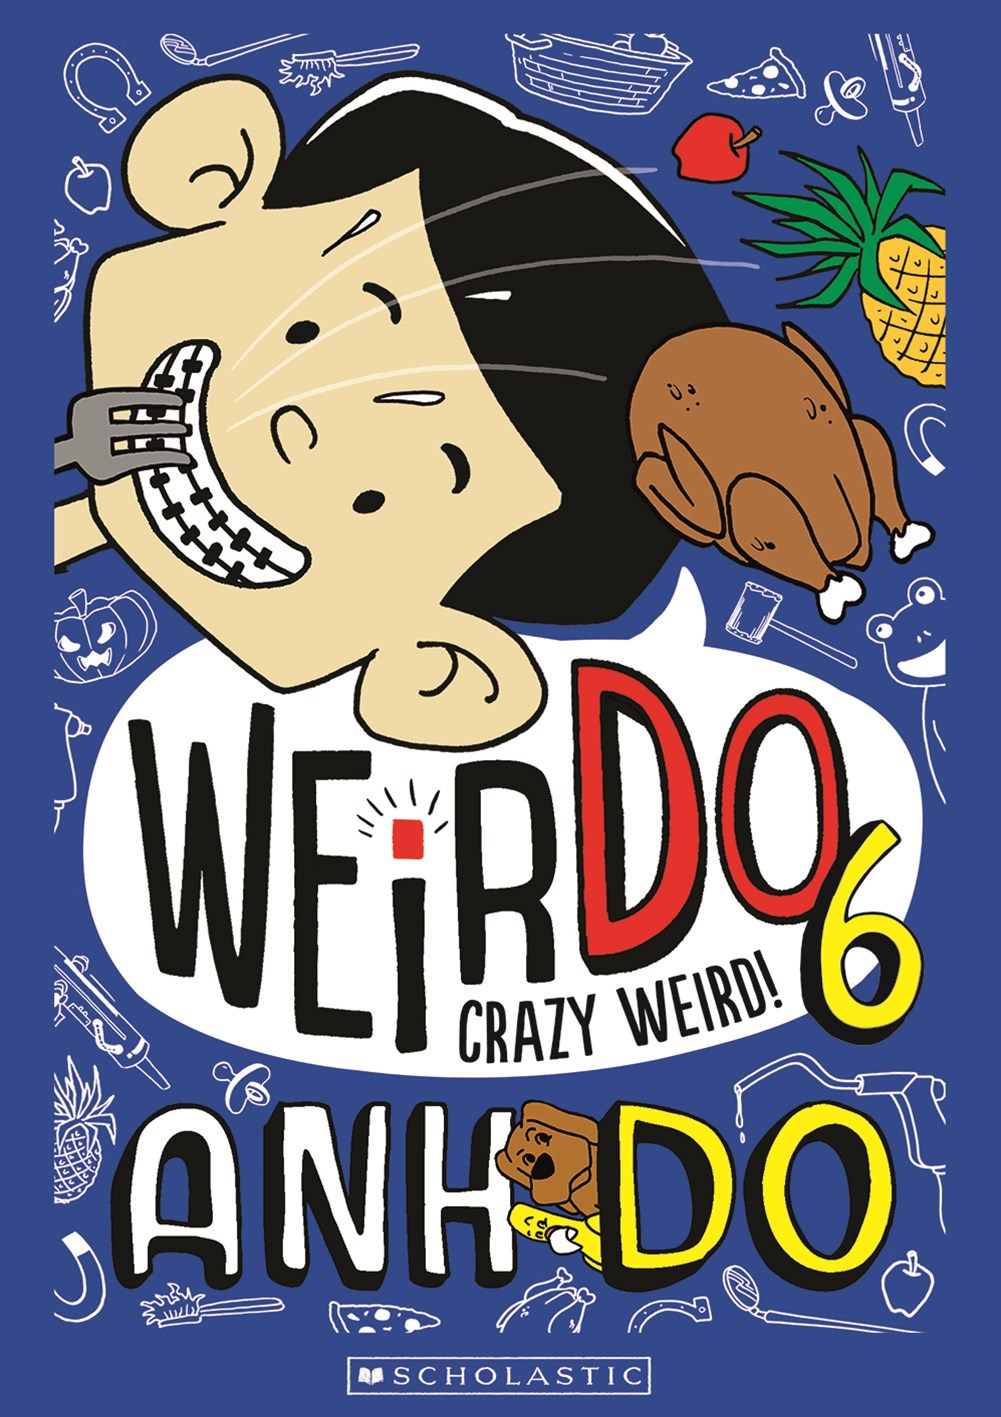 Crazy Weird! (Weirdo Book 6)